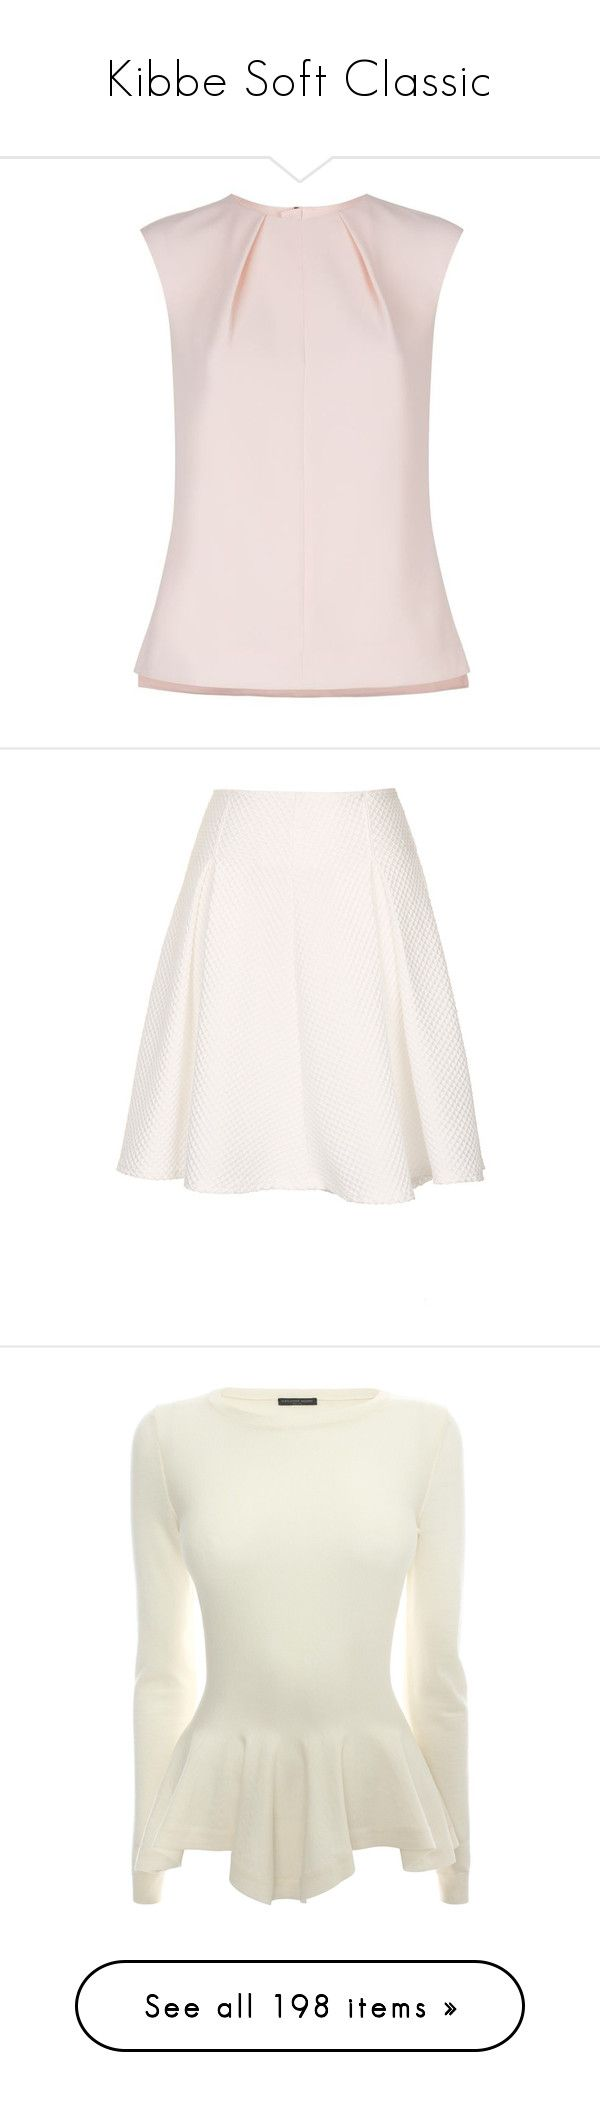 """""""Kibbe Soft Classic"""" by krstern ❤ liked on Polyvore featuring tops, ted baker, shell tops, crepe top, pink shell top, woven top, skirts, mini skirts, bottoms and faldas"""